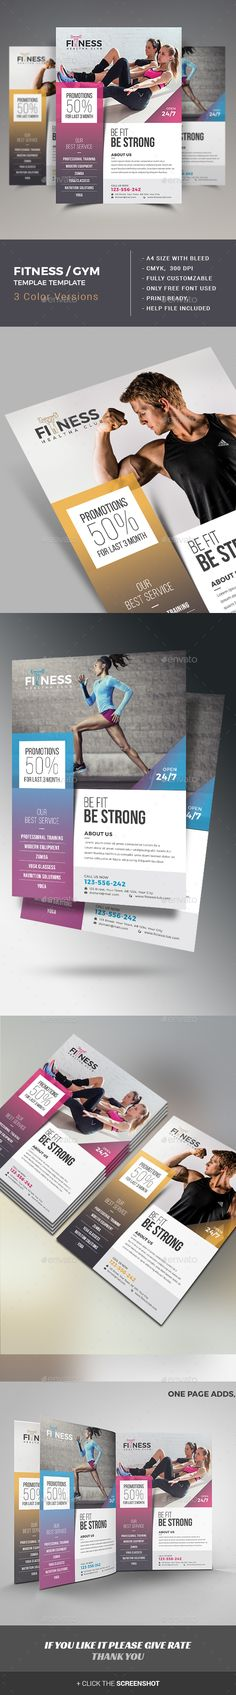 #Fitness / GYM #Flyer - #Sports Events Download here: https://graphicriver.net/item/fitness-gym-flyer/15413270?ref=alena994